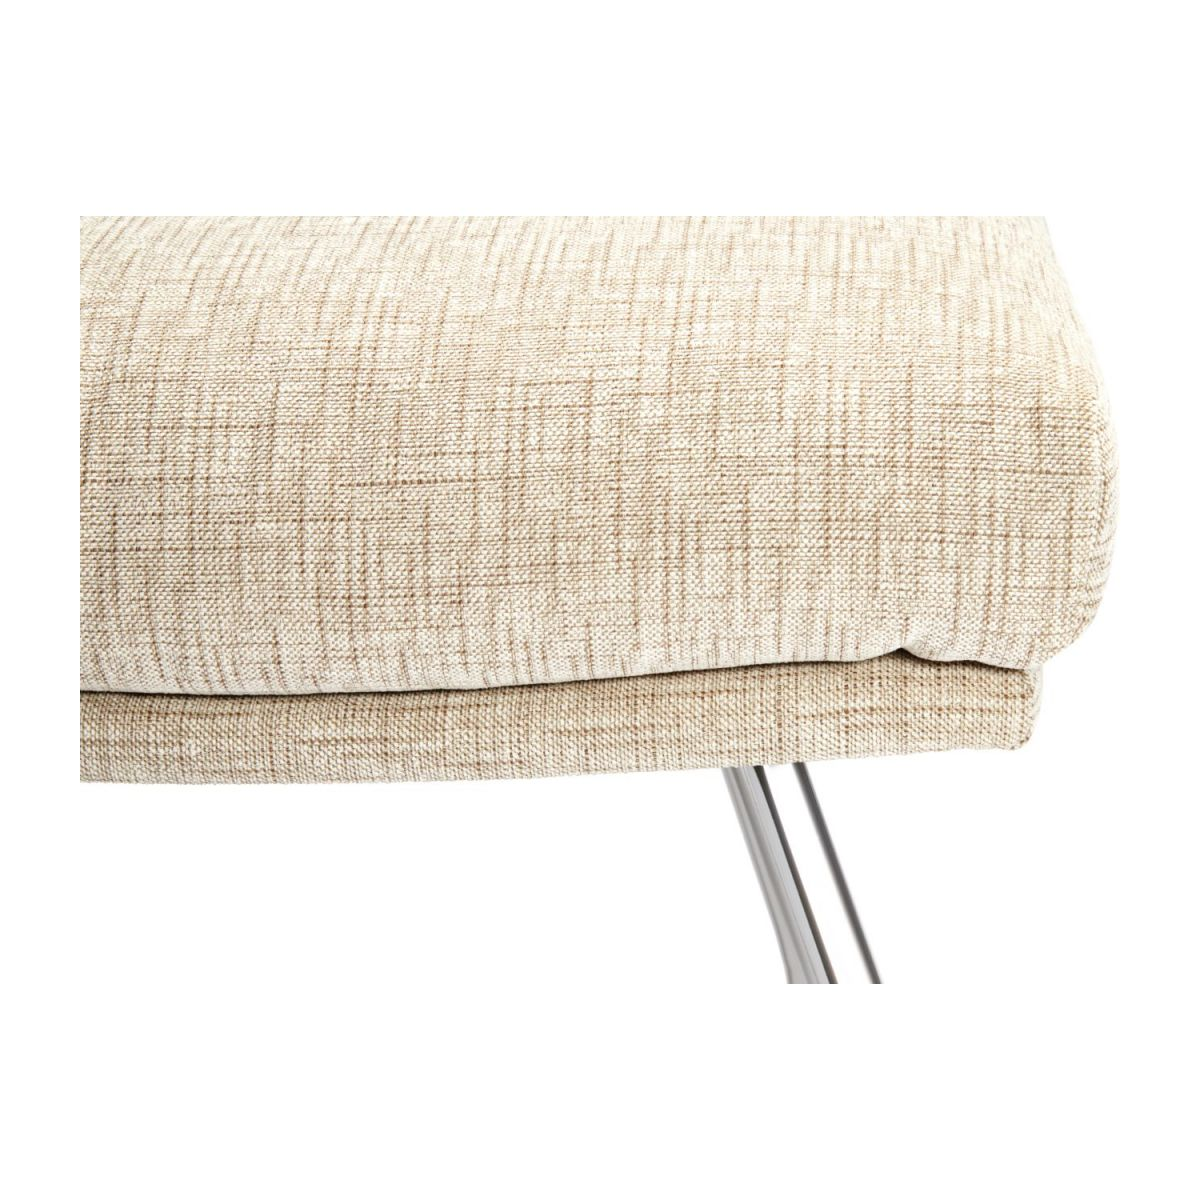 Footstool in Ancio fabric, nature with chromed metal legs n°5